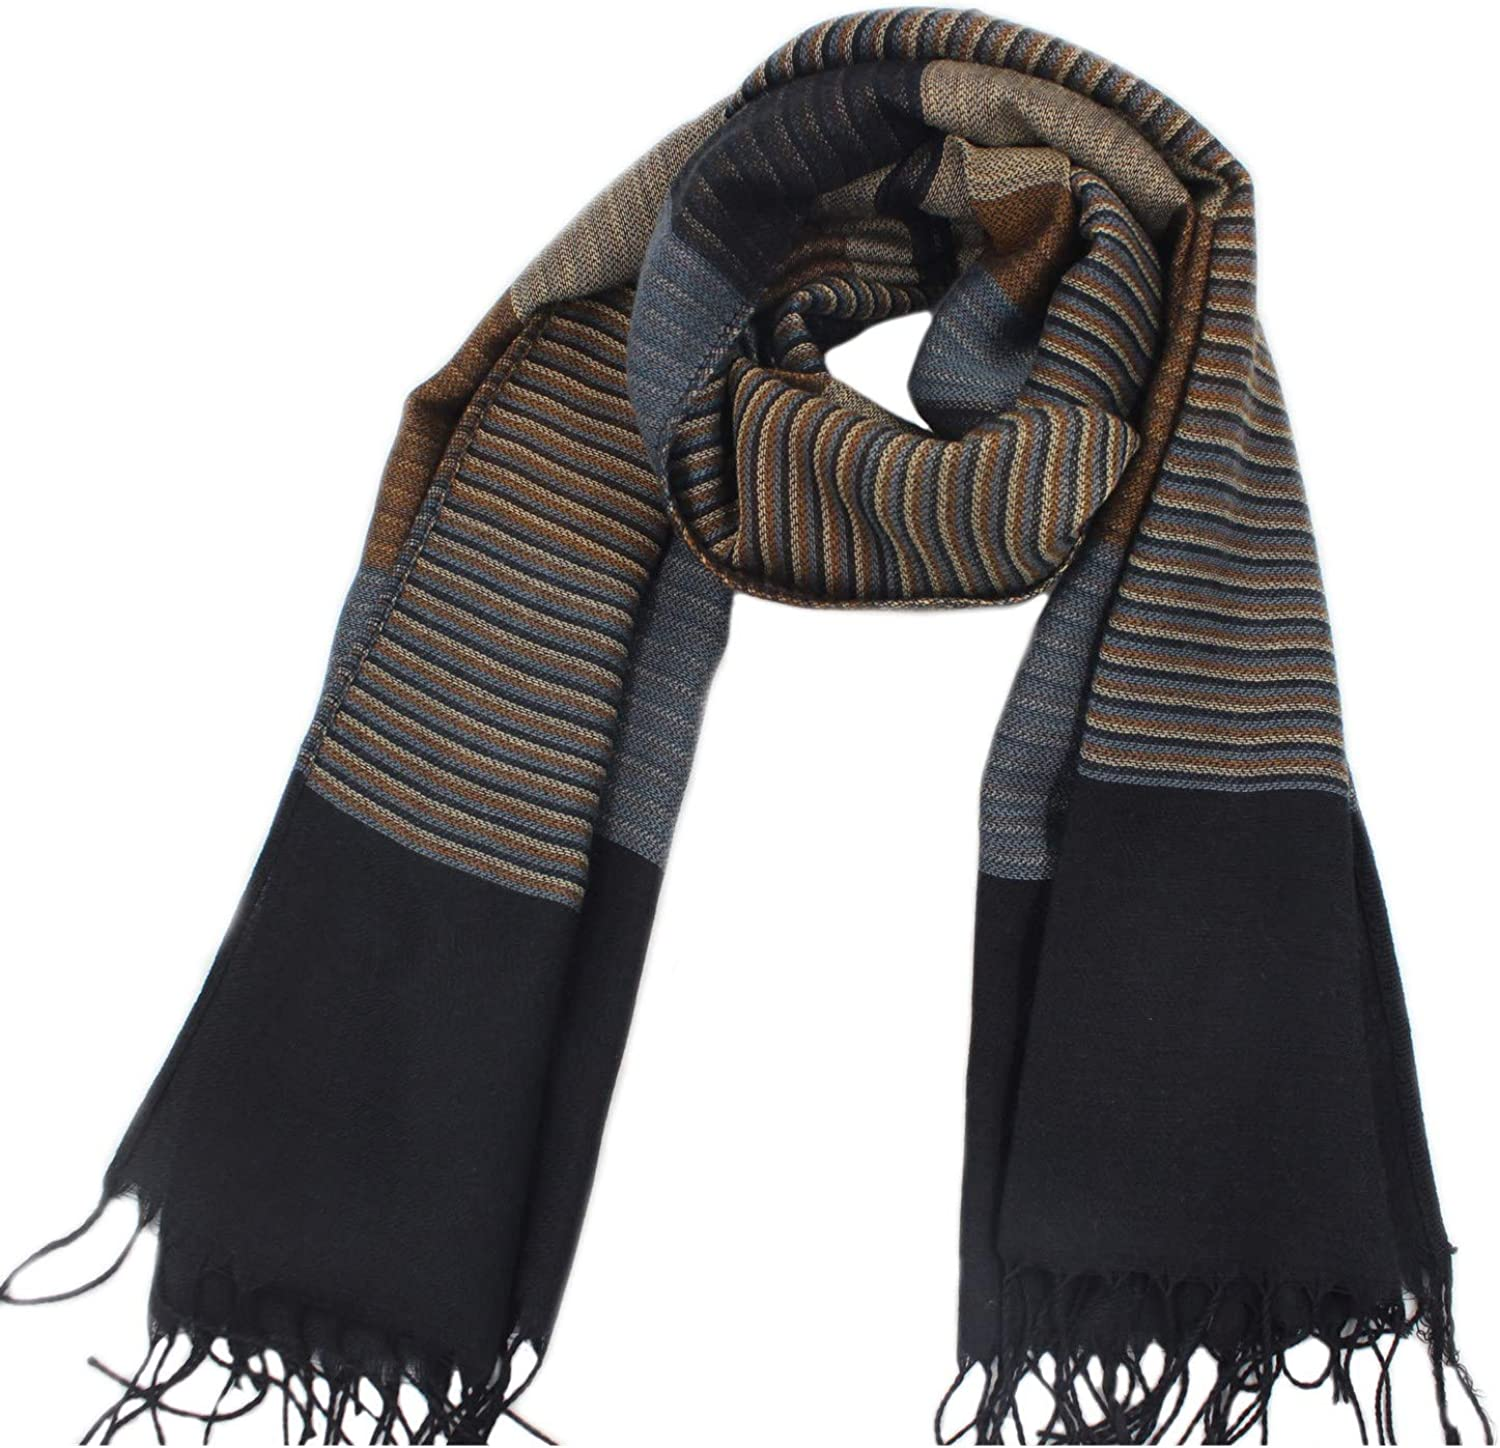 MESHIKAIER Autumn Winter Long Men/'s Fashion Cashmere Feel Scarf Neck Warm Scarf Casual Soft Scarf with Tassels